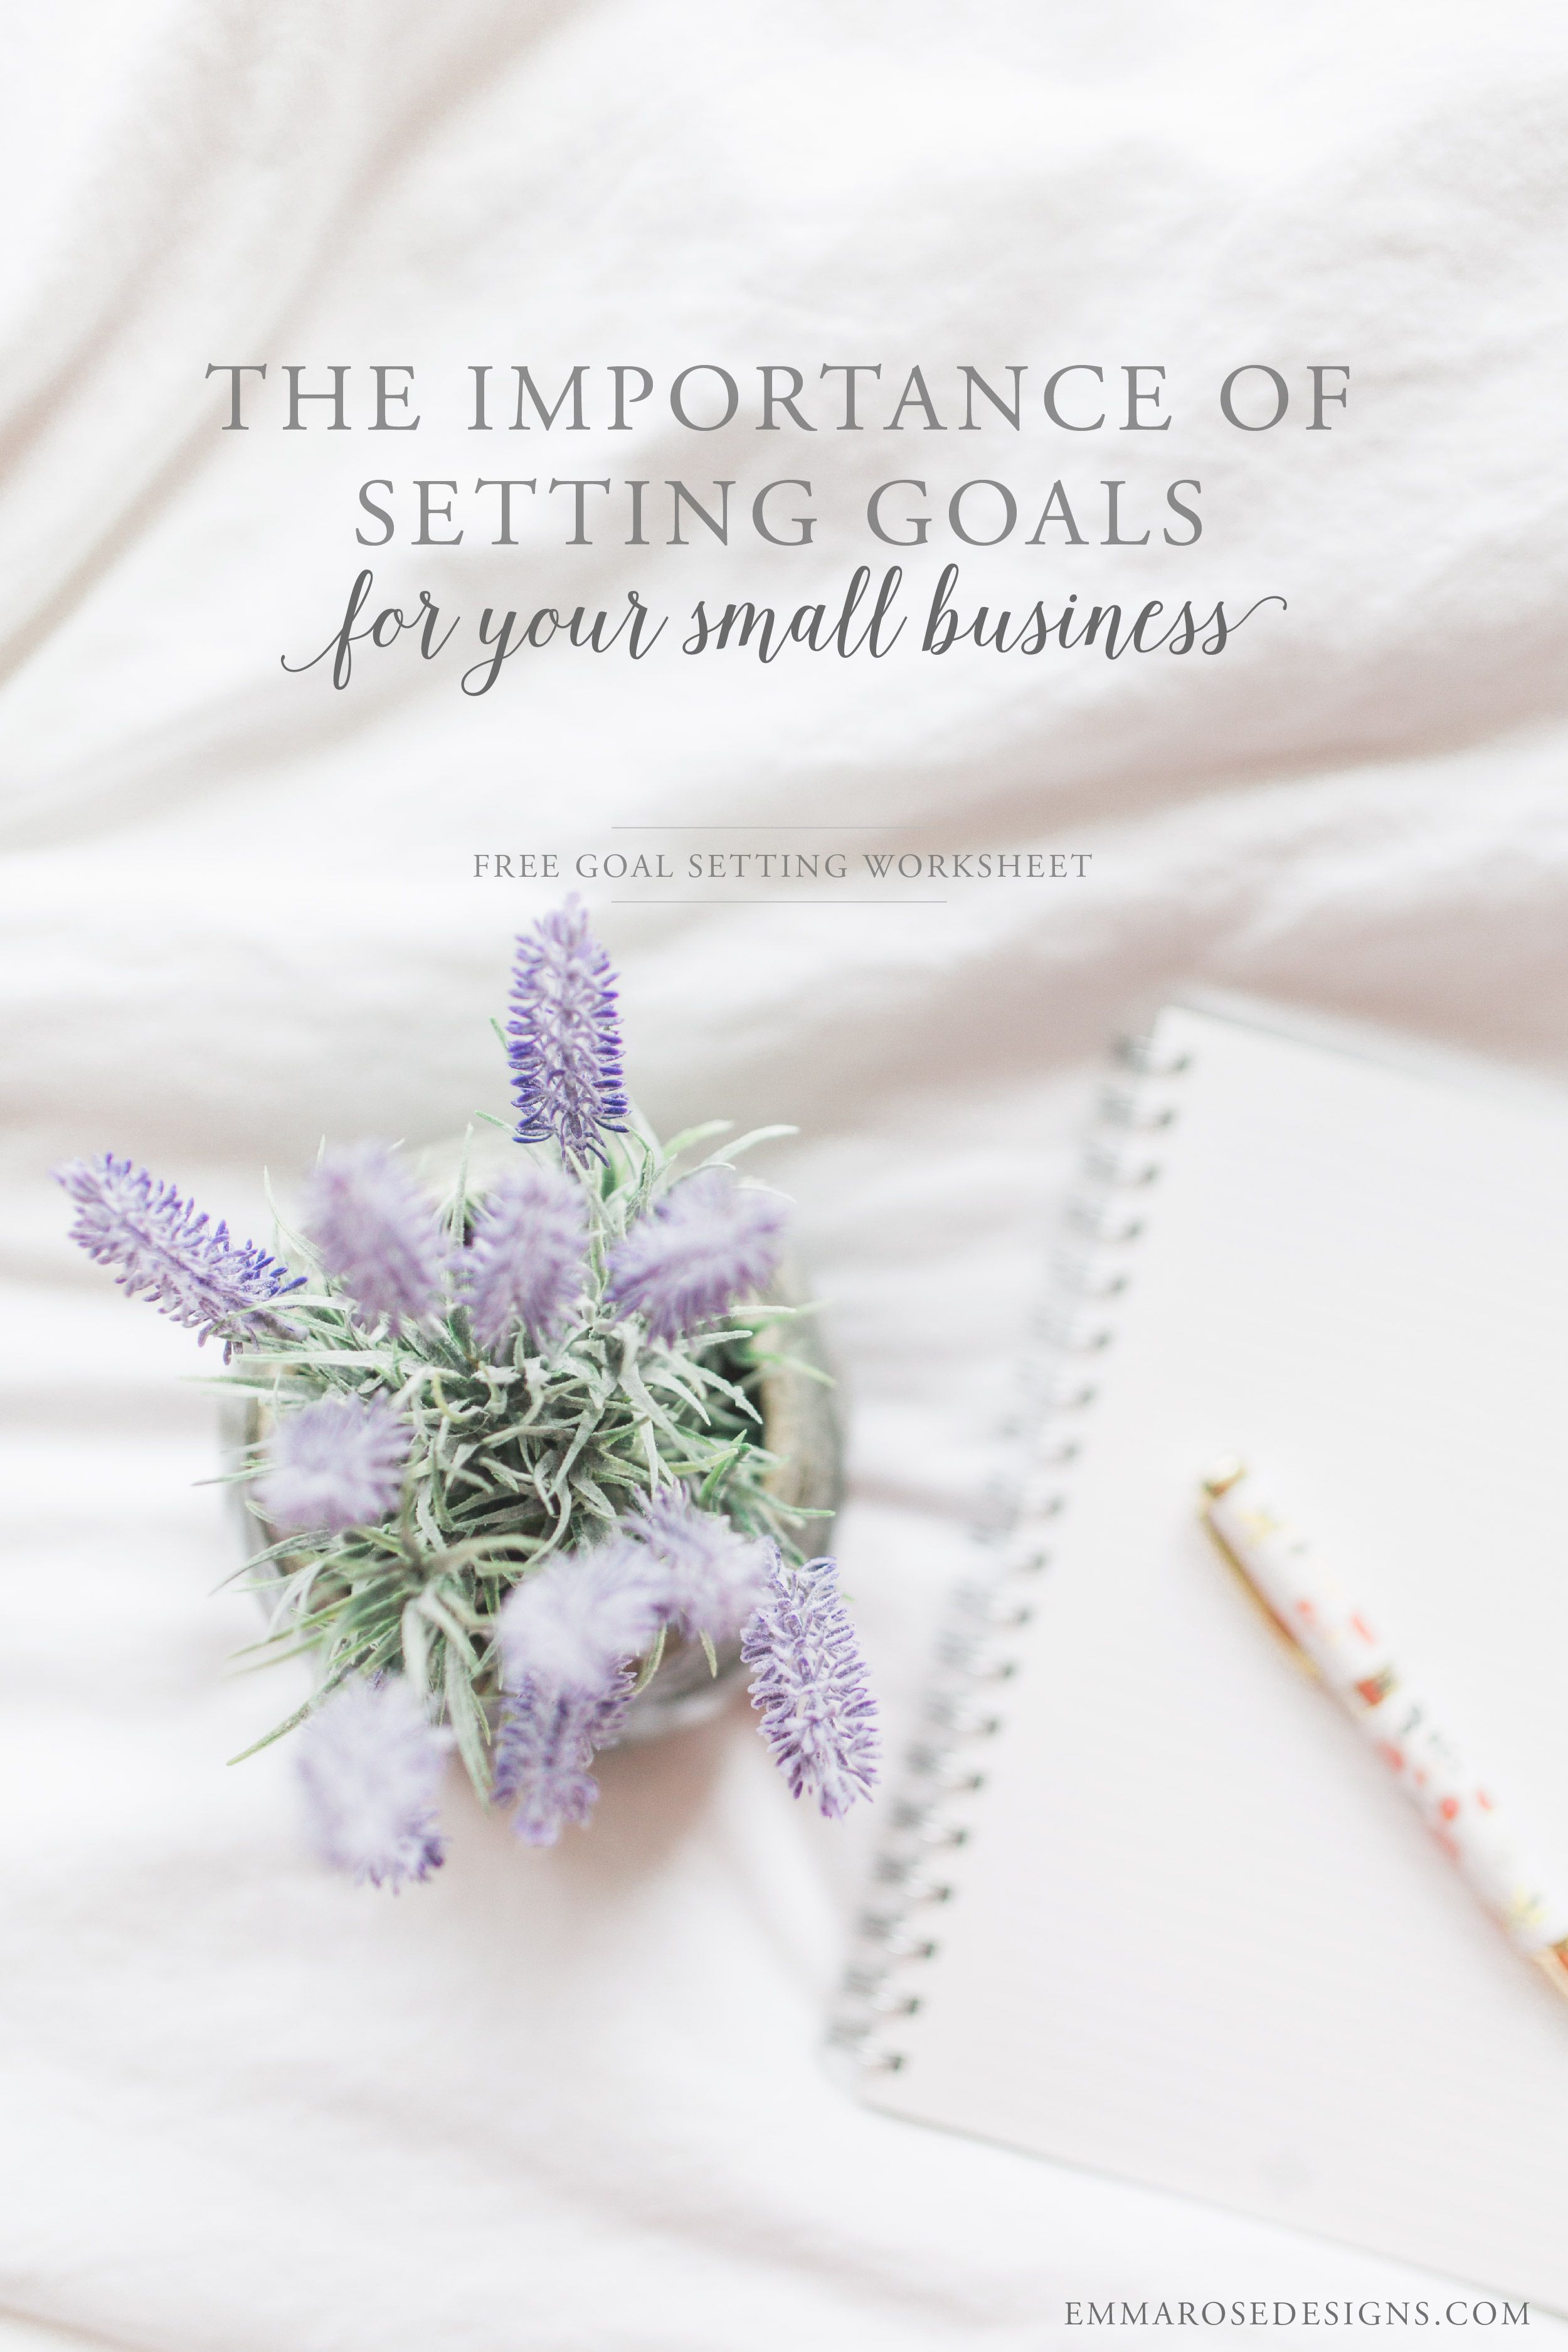 The Importance Of Setting Goals For Your Small Business